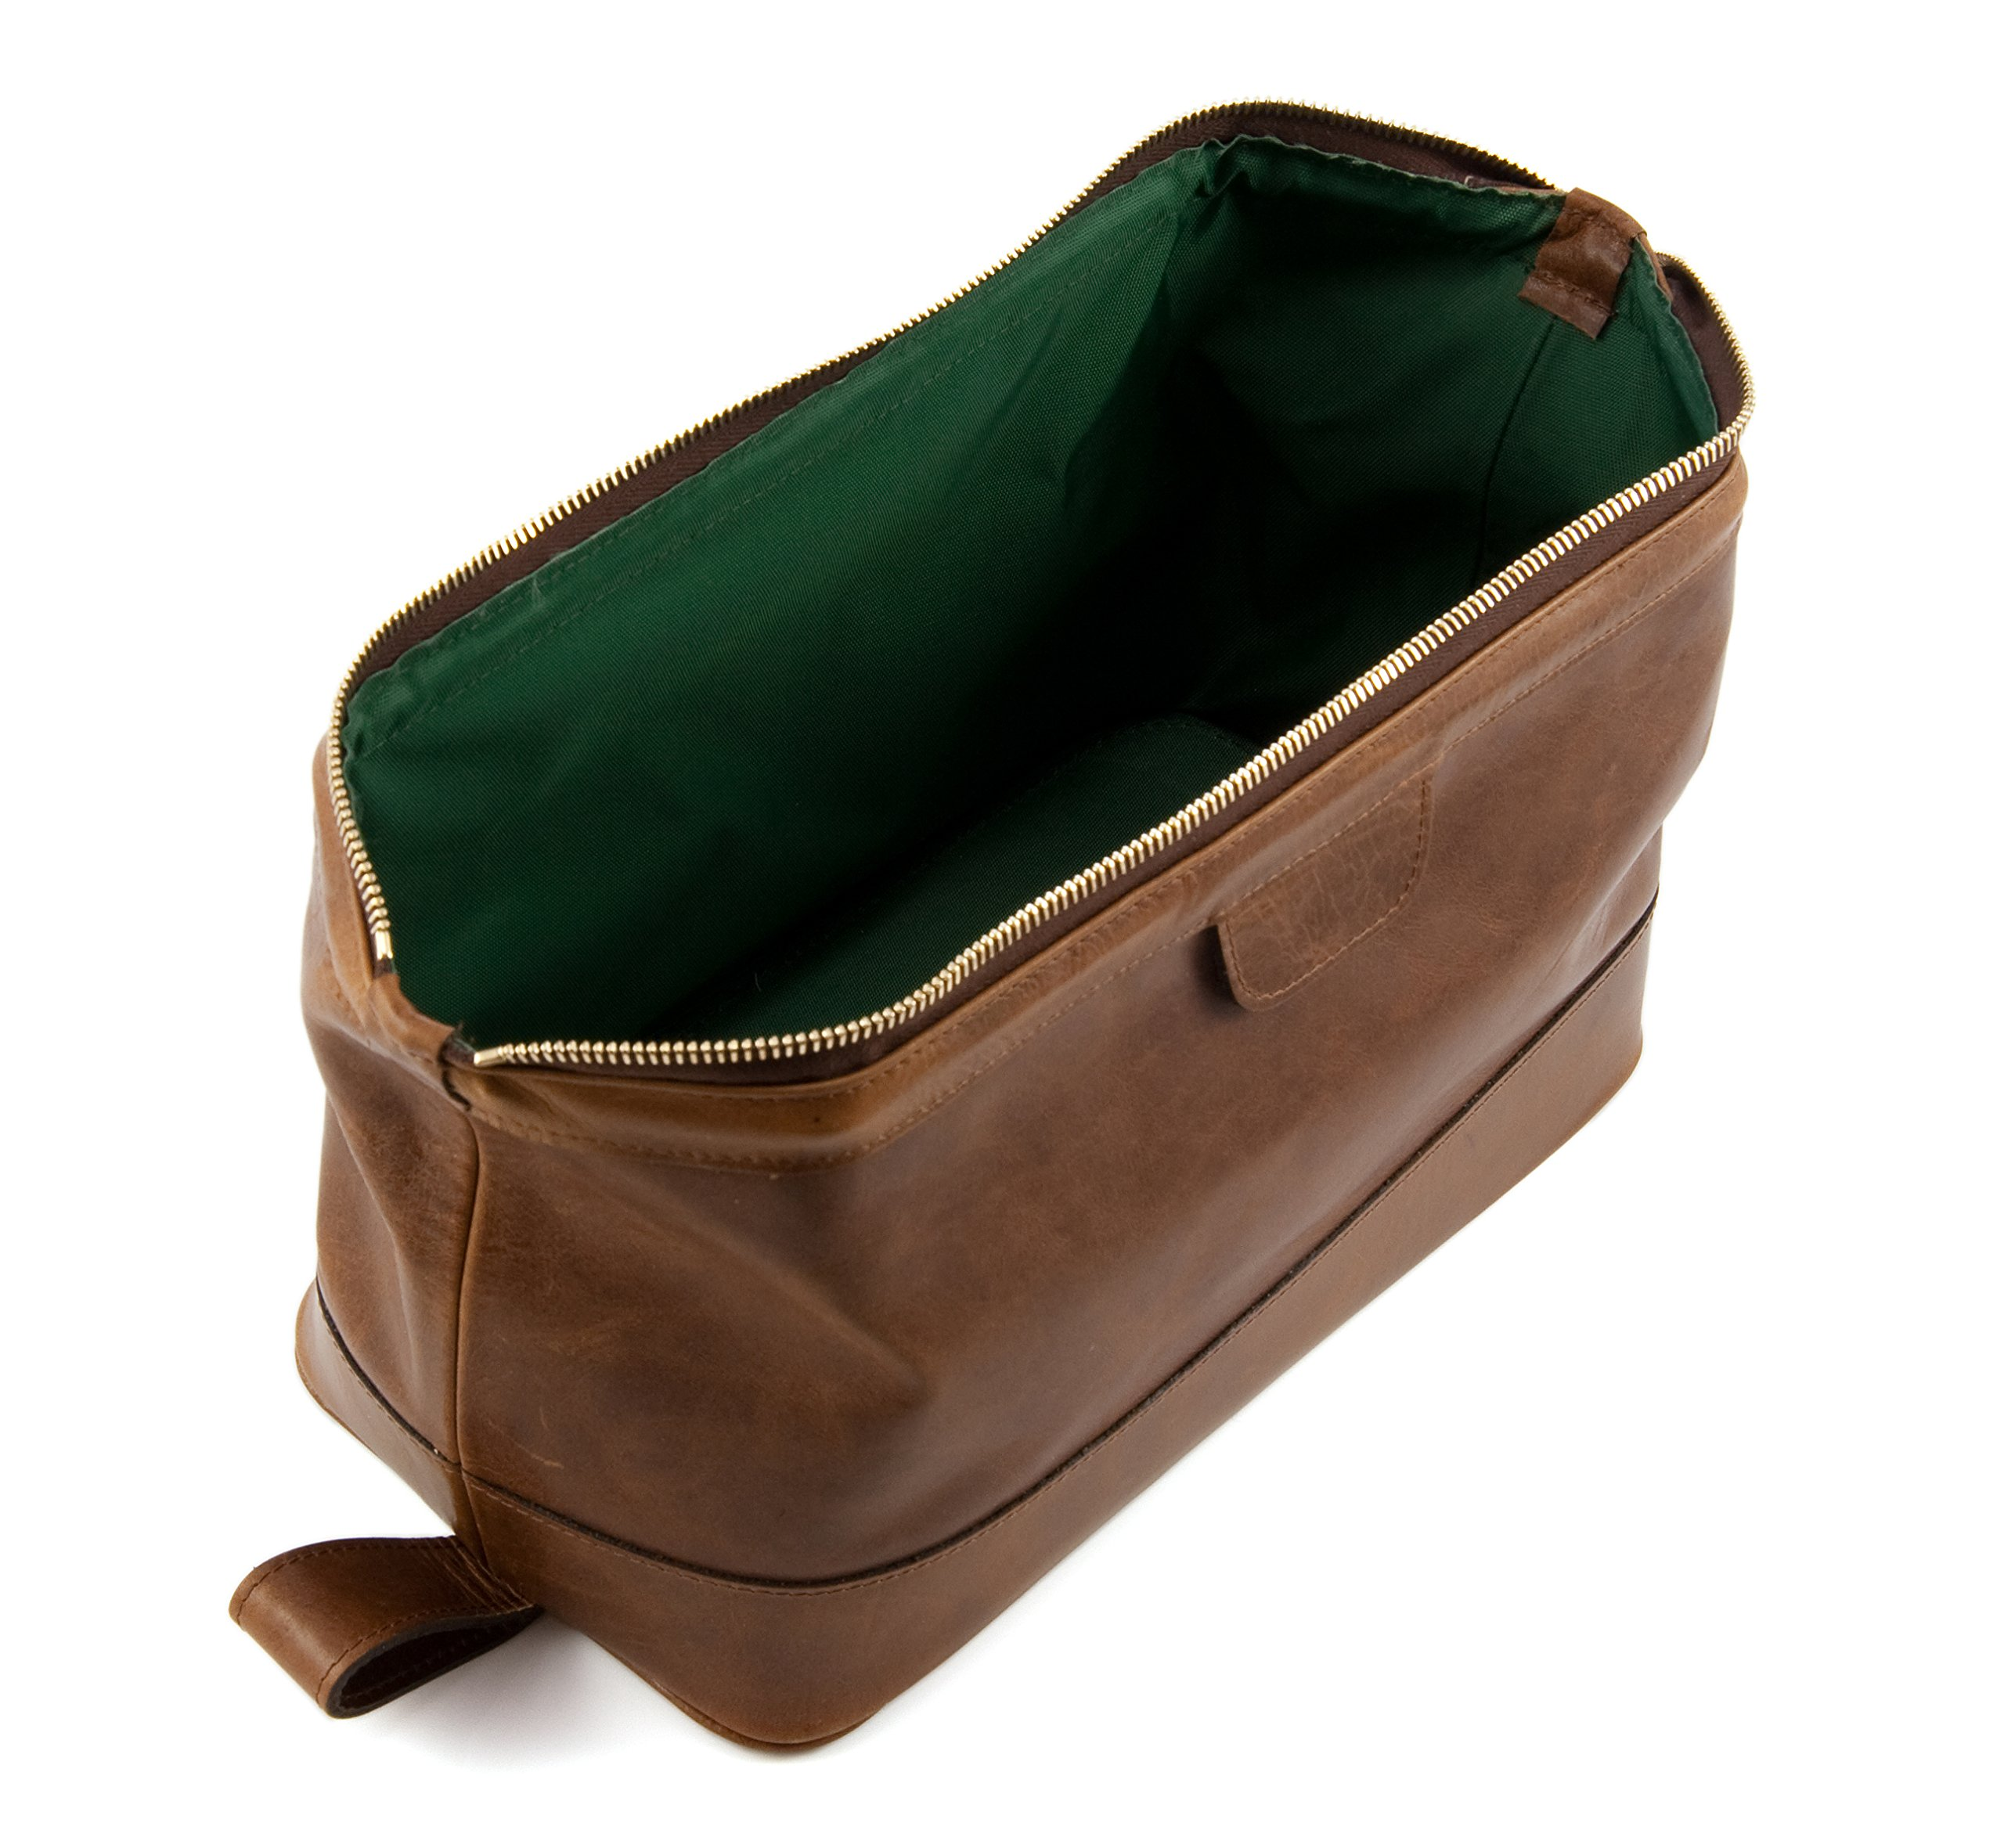 Daines and Hathaway Large Rusty Blaze Brown Leather Wash Bag by Daines and Hathaway